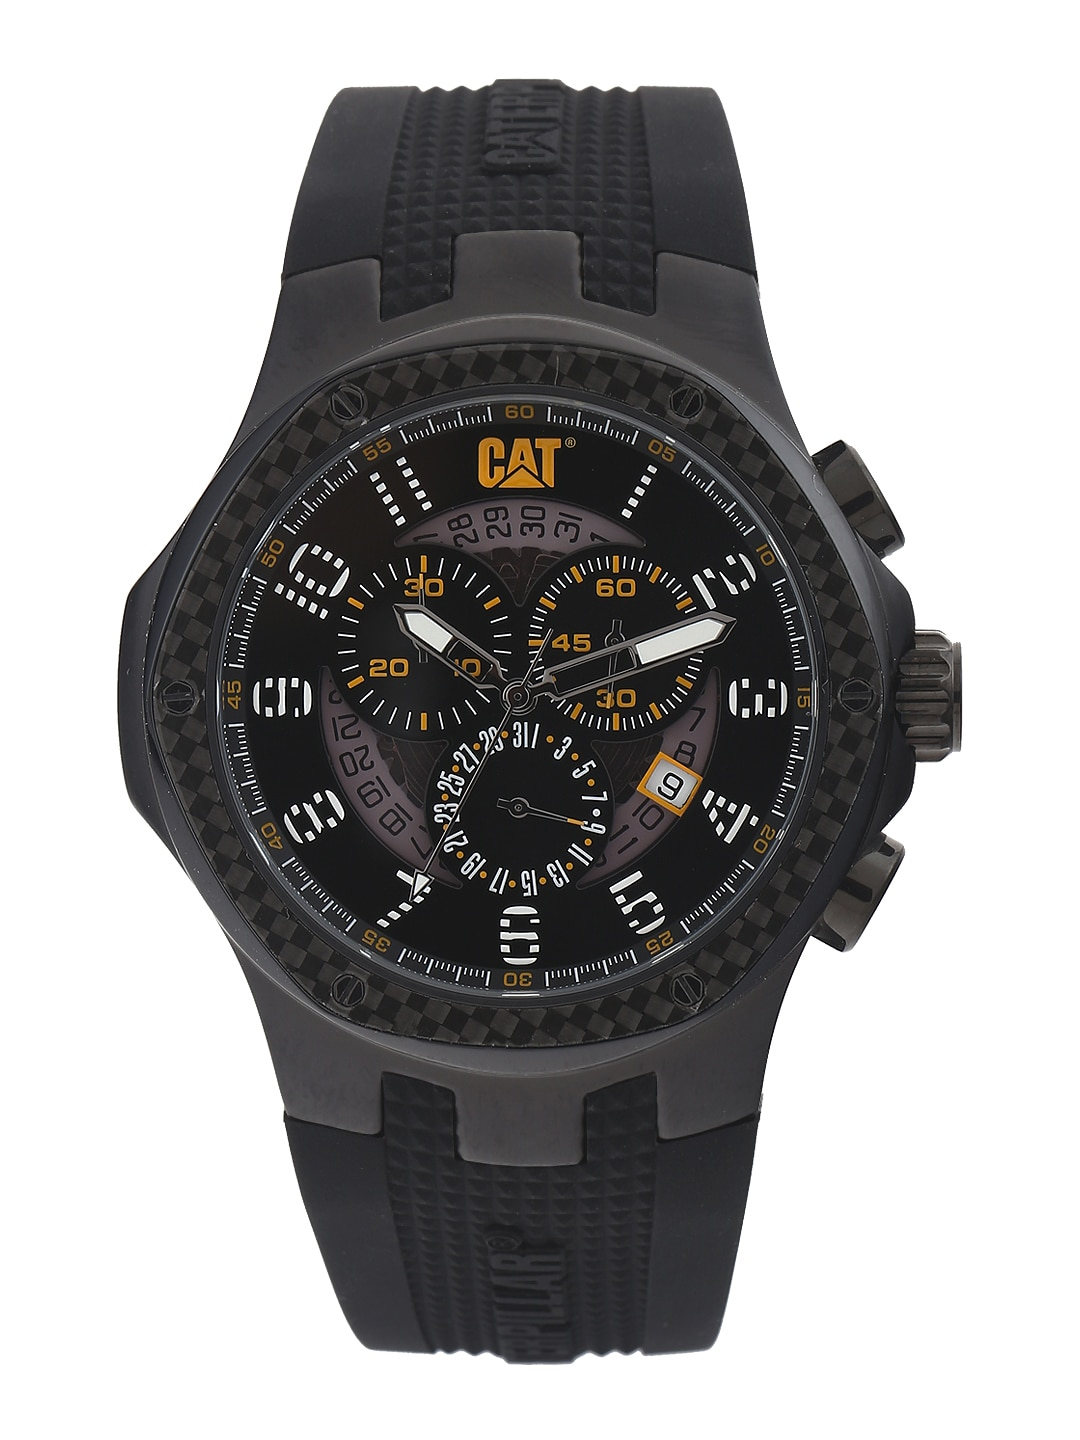 Cat CAT Men Black Dial Chronograph Watch A5.163.21.111